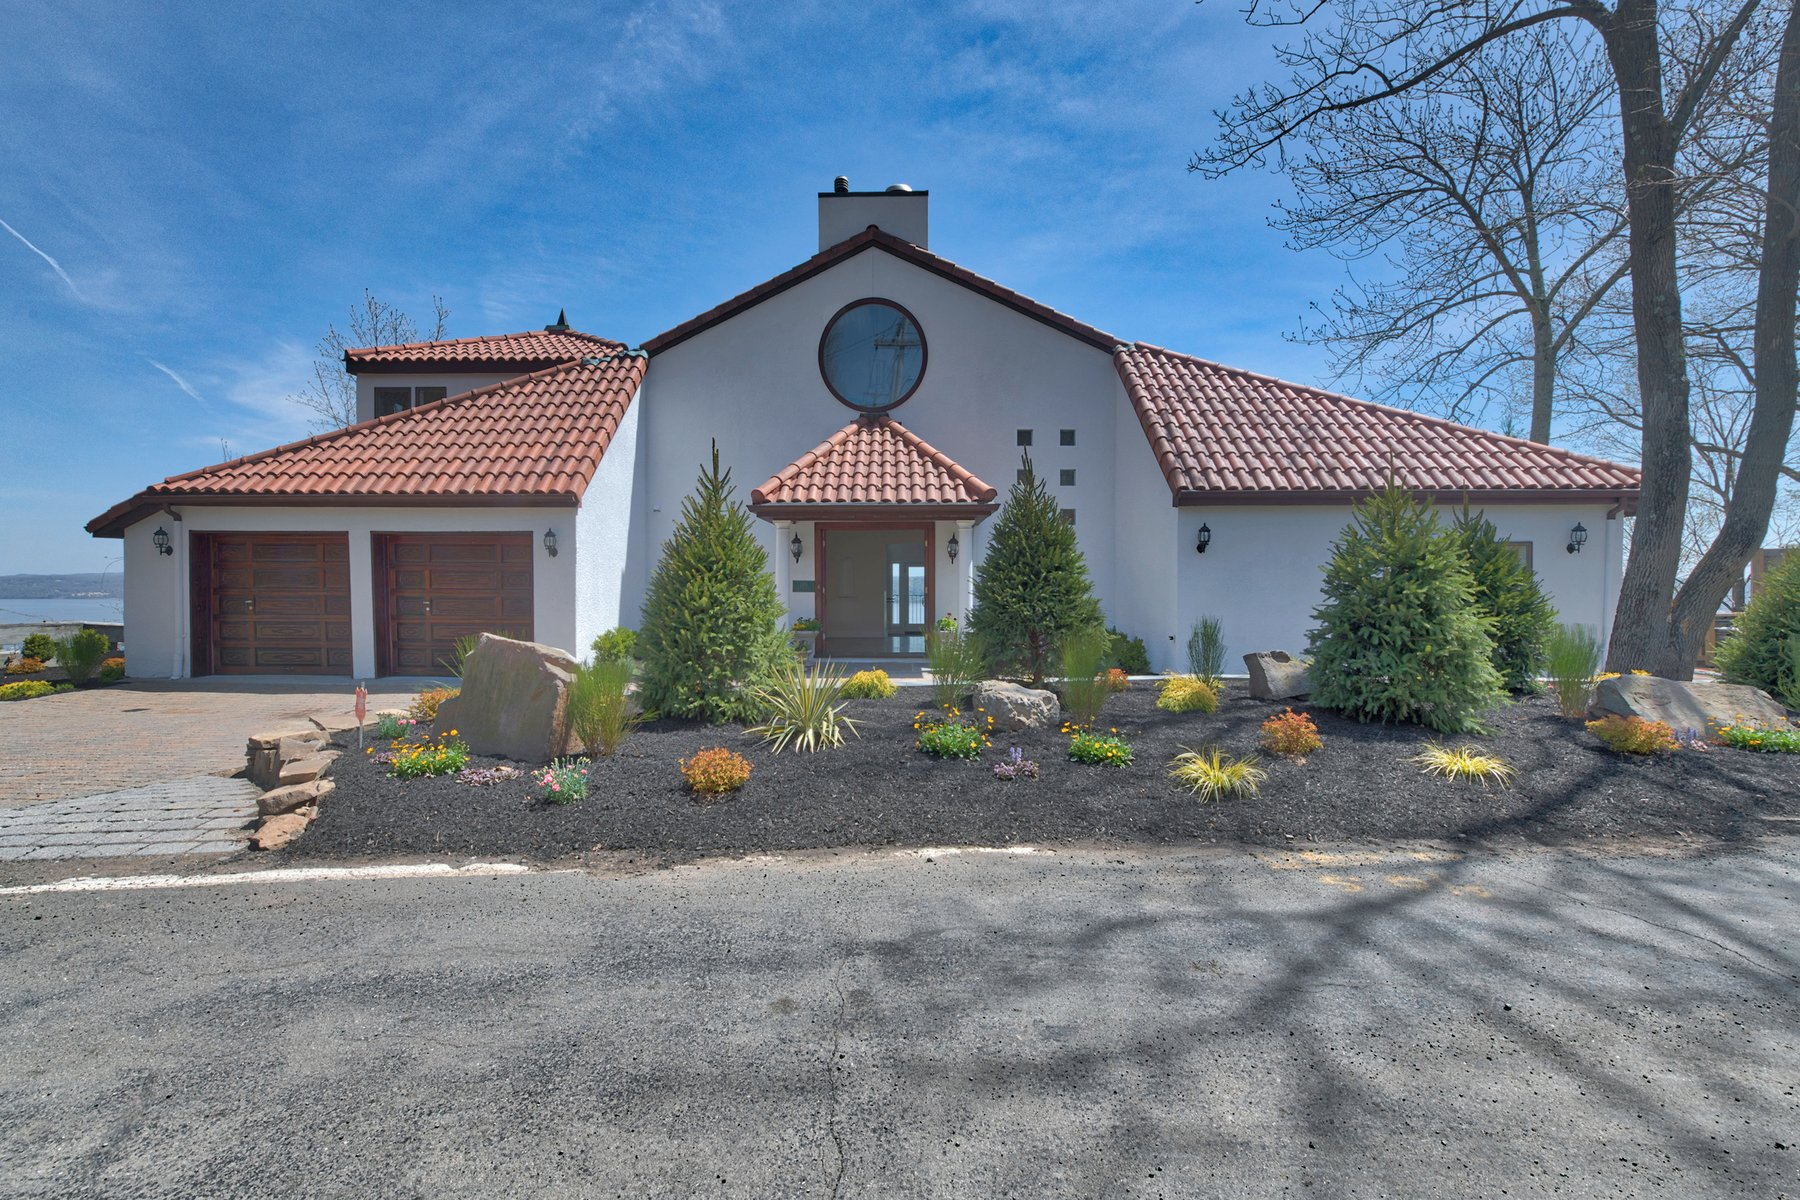 Single Family Homes for Active at Mediterranean Style - Hudson River Views 119 Tweed Blvd. Upper Grandview, New York 10960 United States